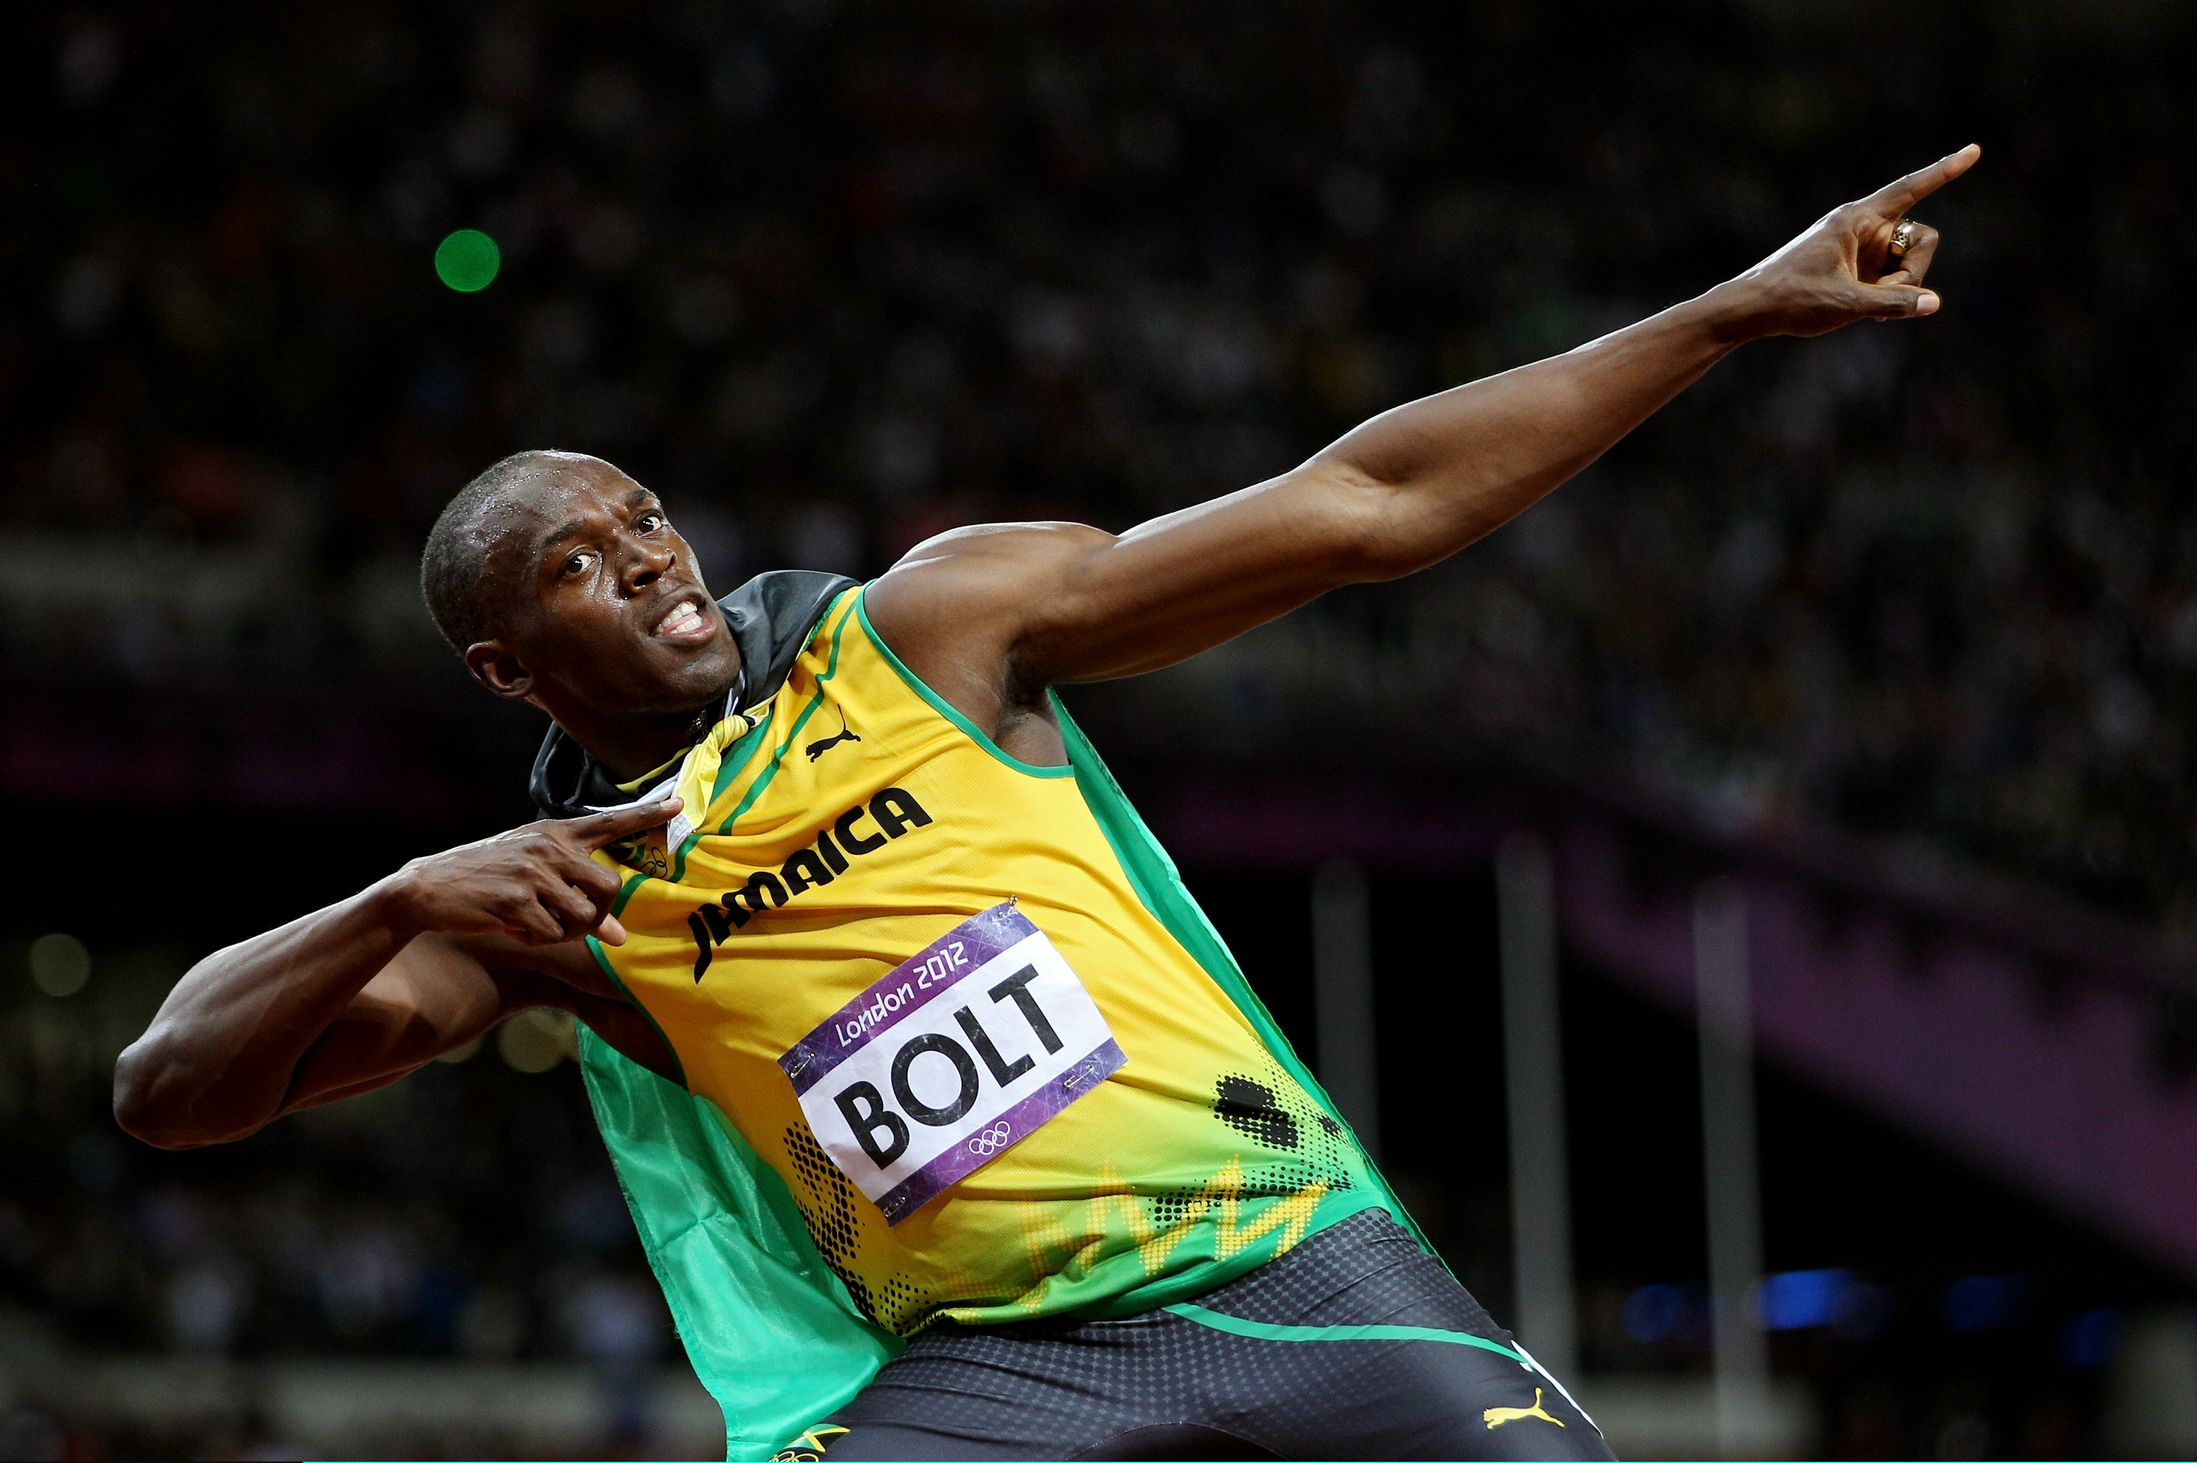 Photo of I've accomplished all i want in sports says Usain Bolt